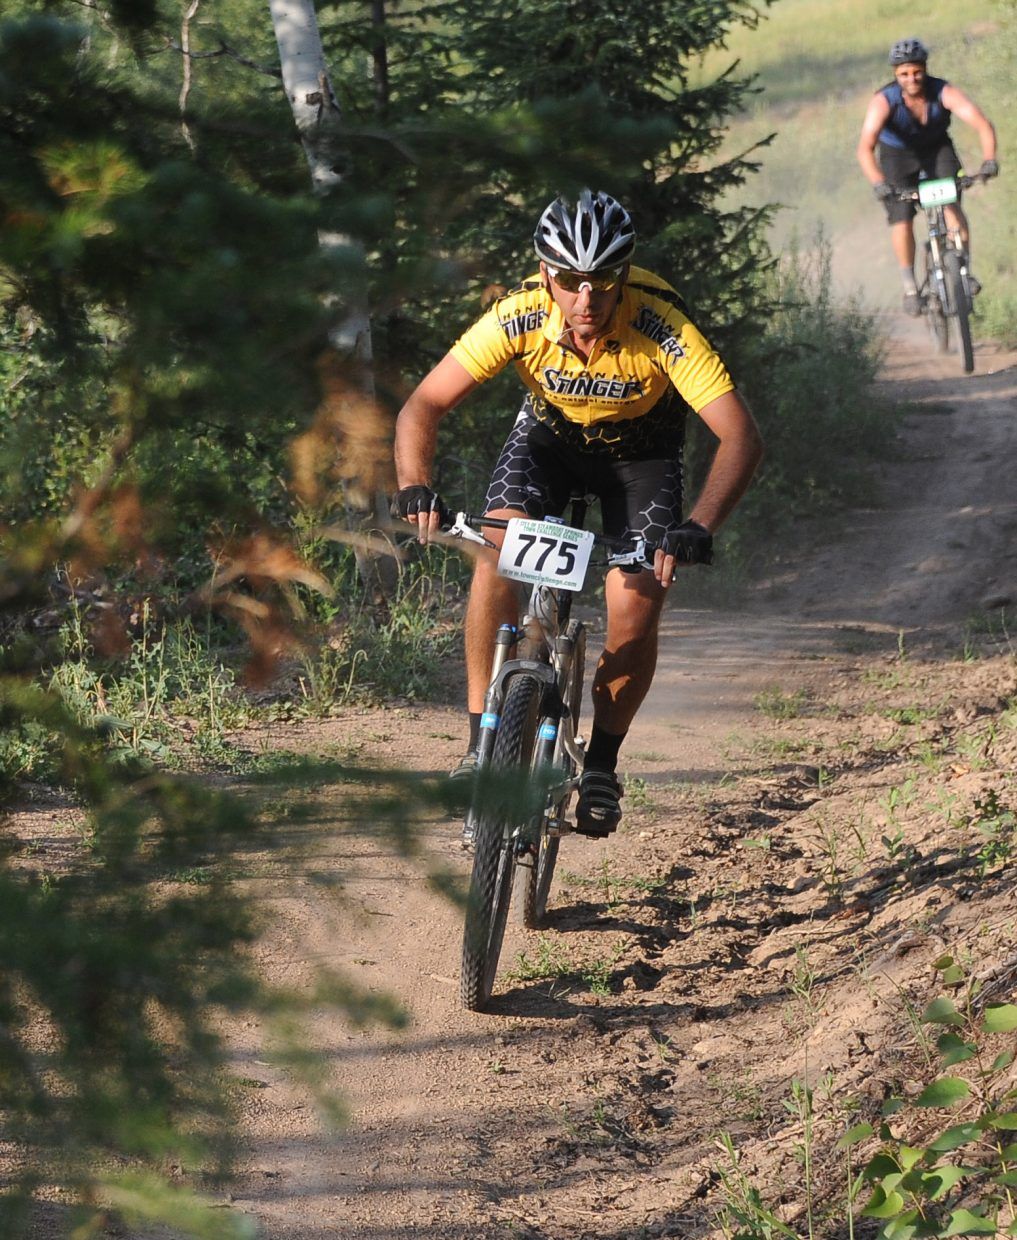 Christian Levan races Wednesday in the Sunshine Loop Town Challenge race at Steamboat Ski Area.